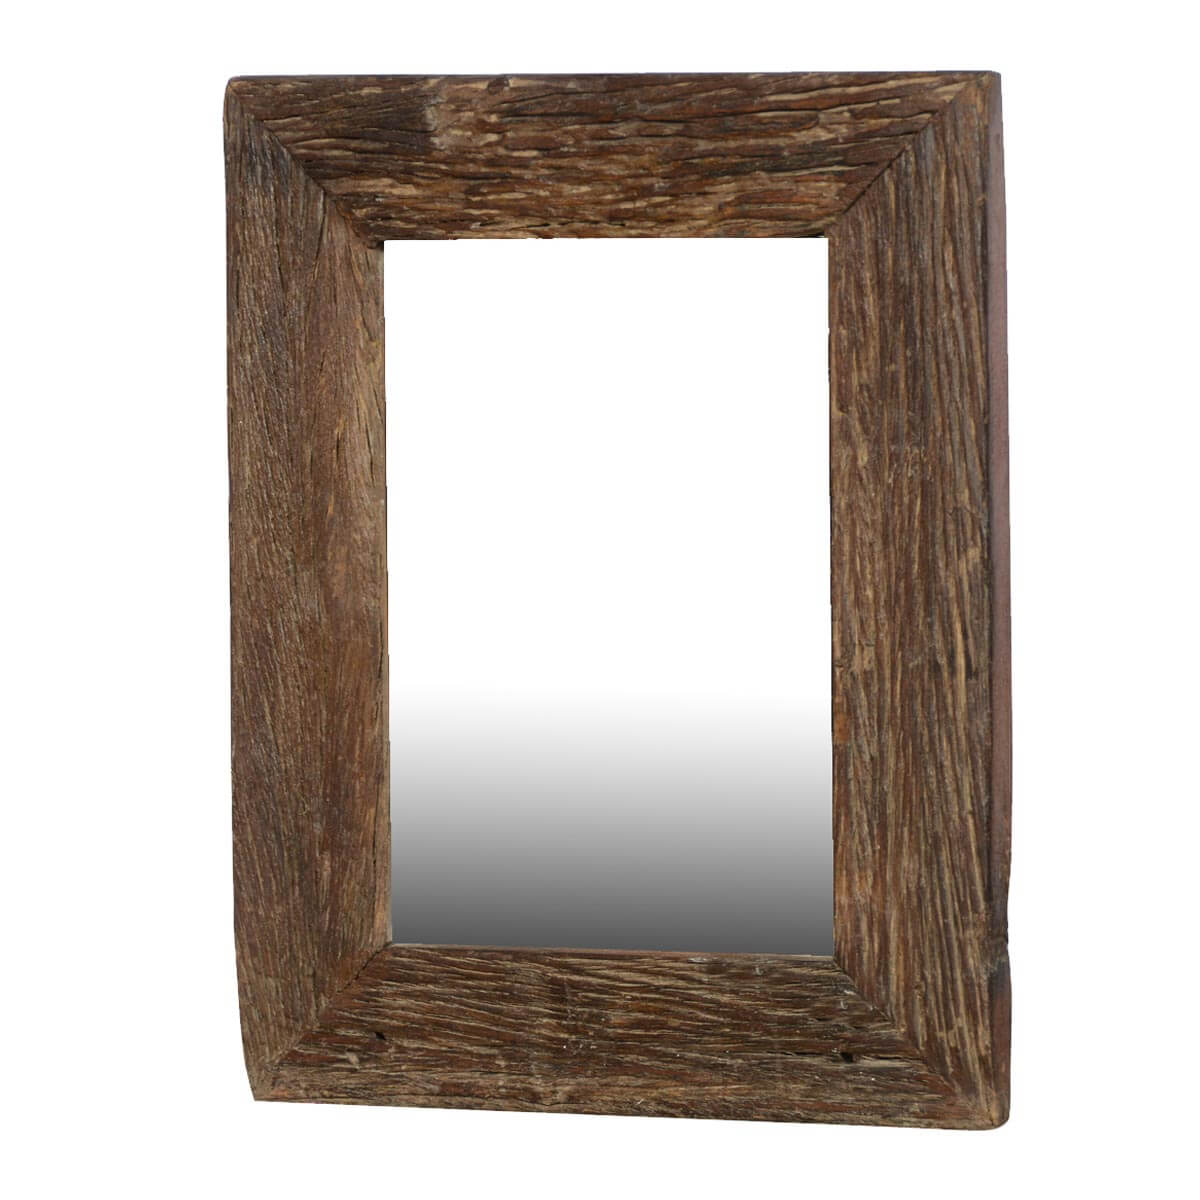 Appalachian rustic reclaimed wood 23 5 wall mirror frame for Rustic mirror